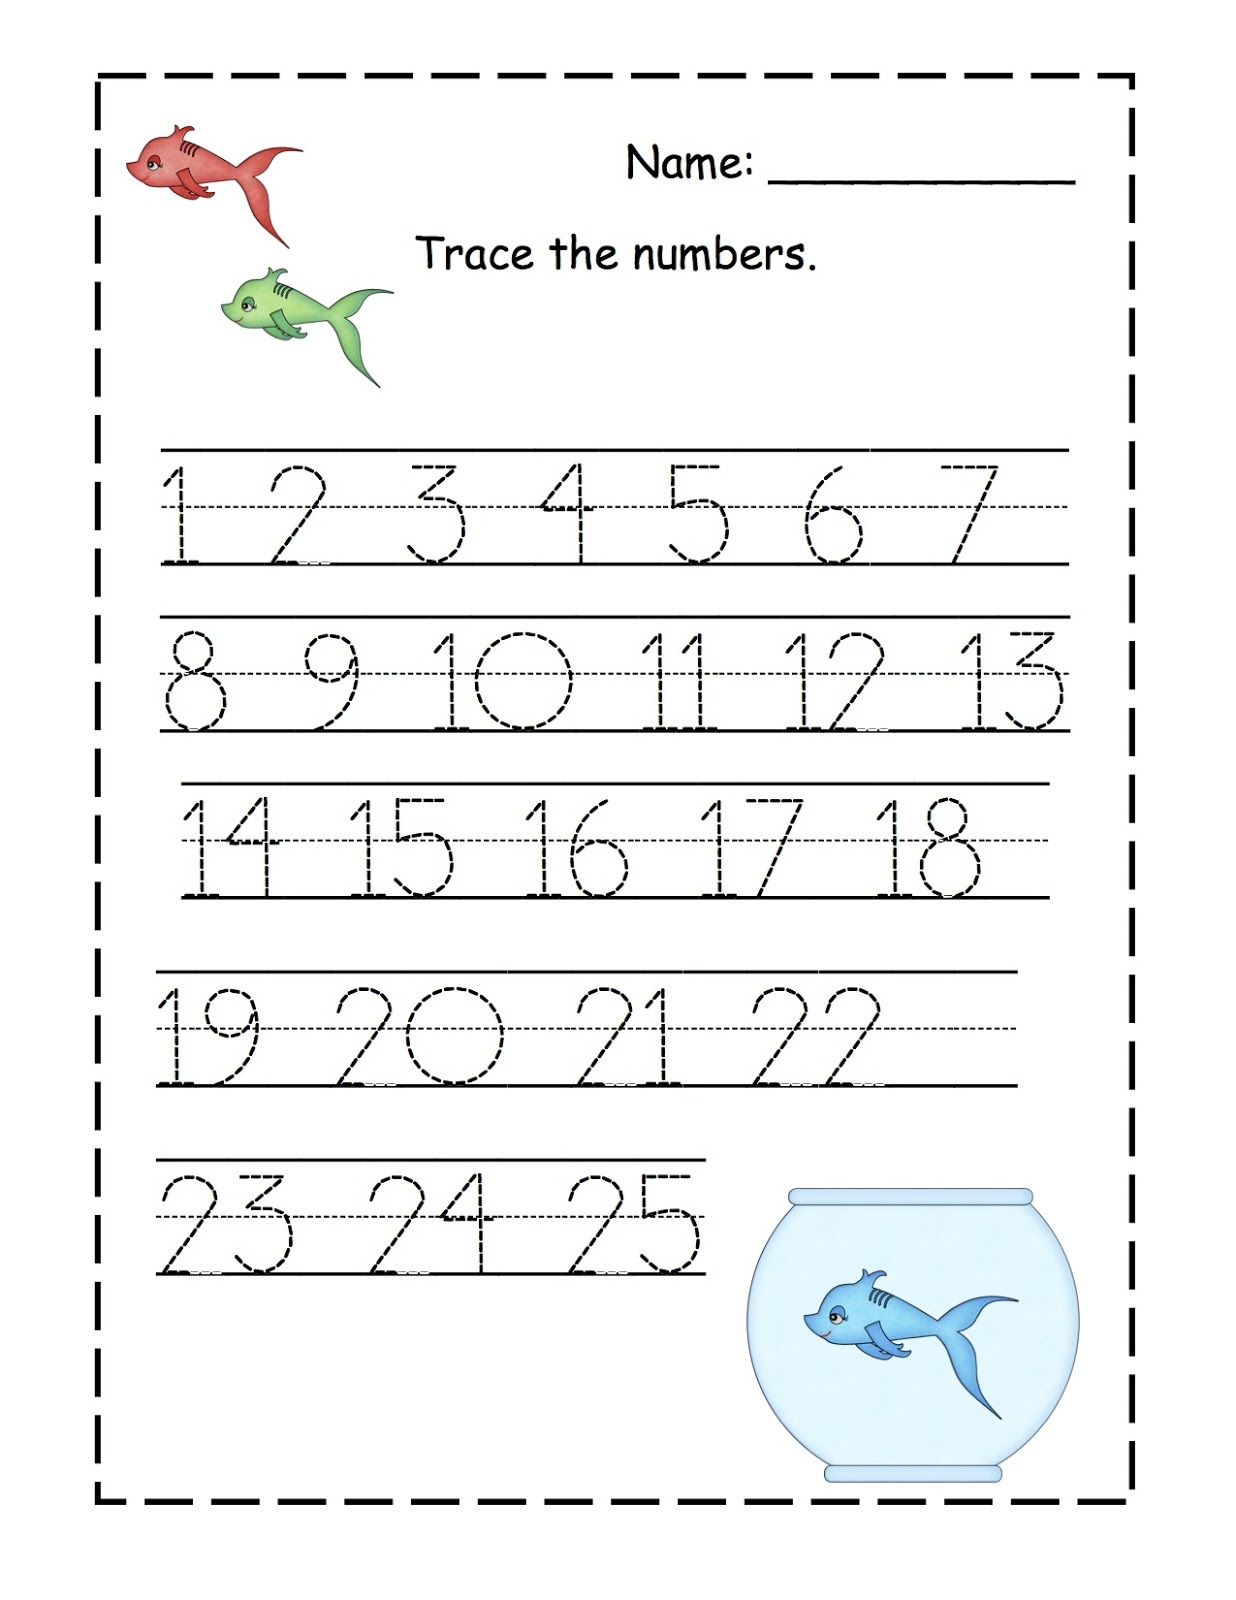 Number Trace Worksheets For Kids